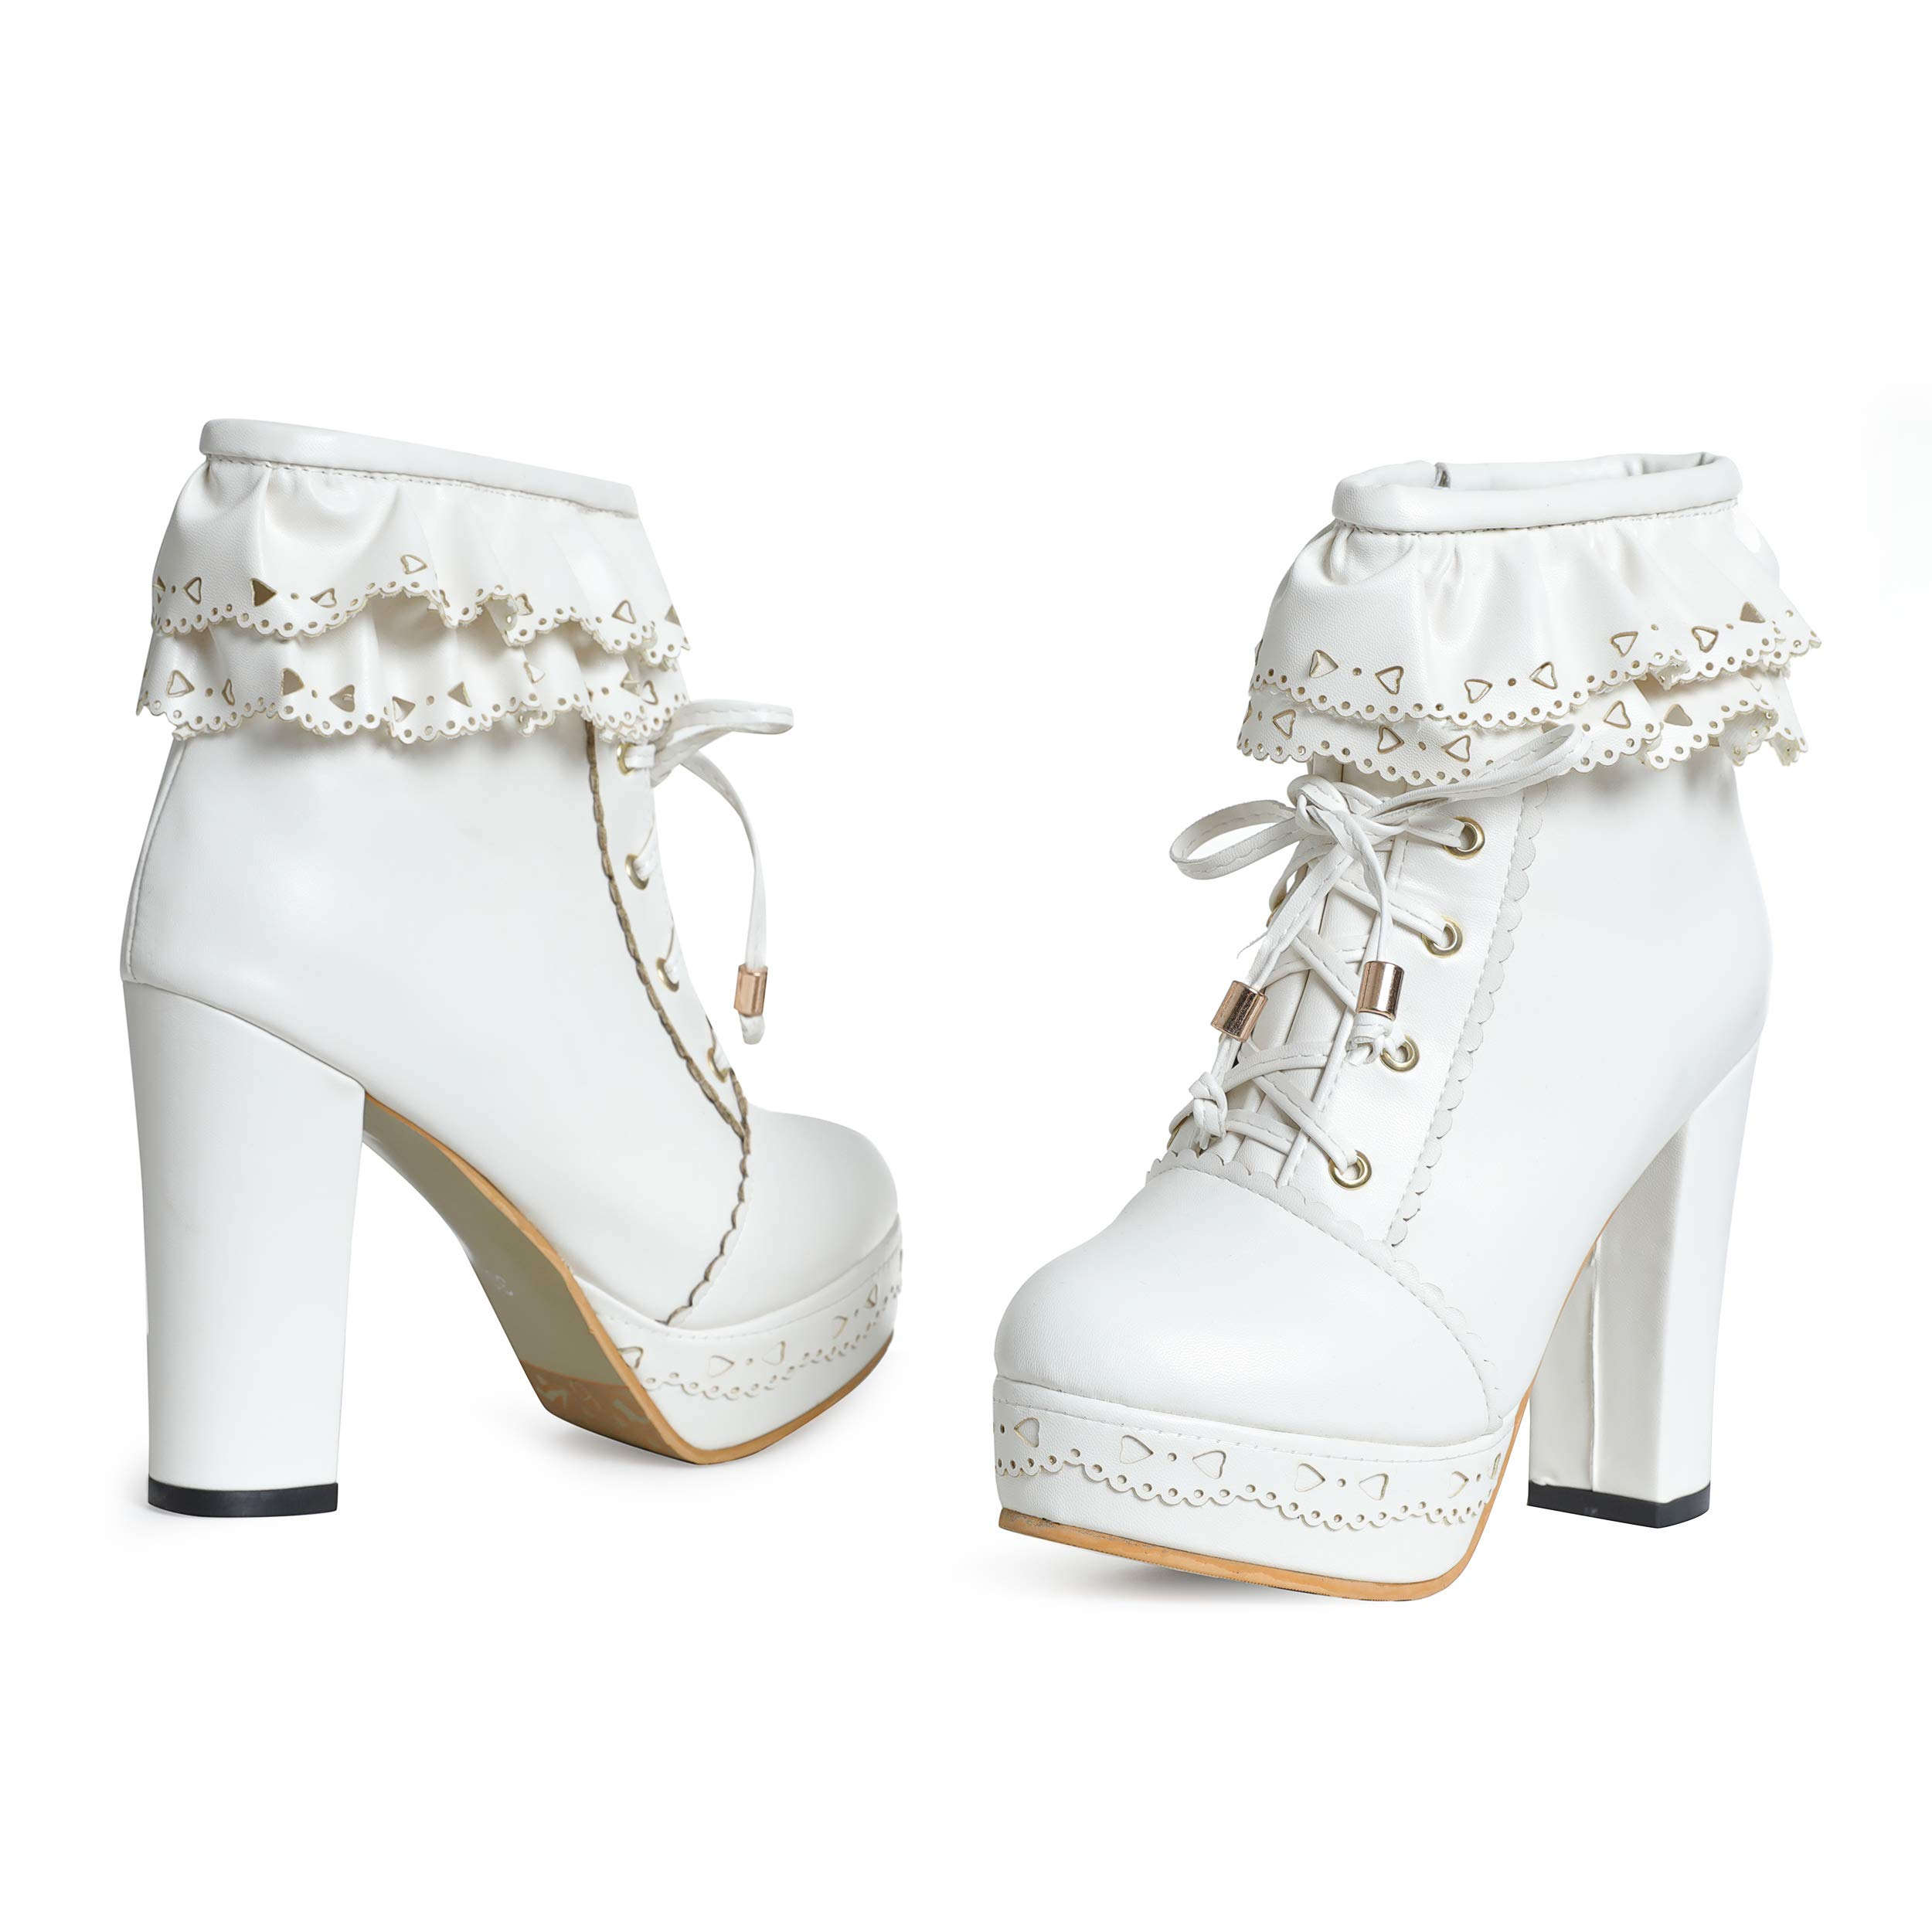 0b0e858f6509c Susanny Womens Office Party Sweet Lolita Platform Chunky High Heel PU Lace  up White Ankle Boots 8 B (M) US